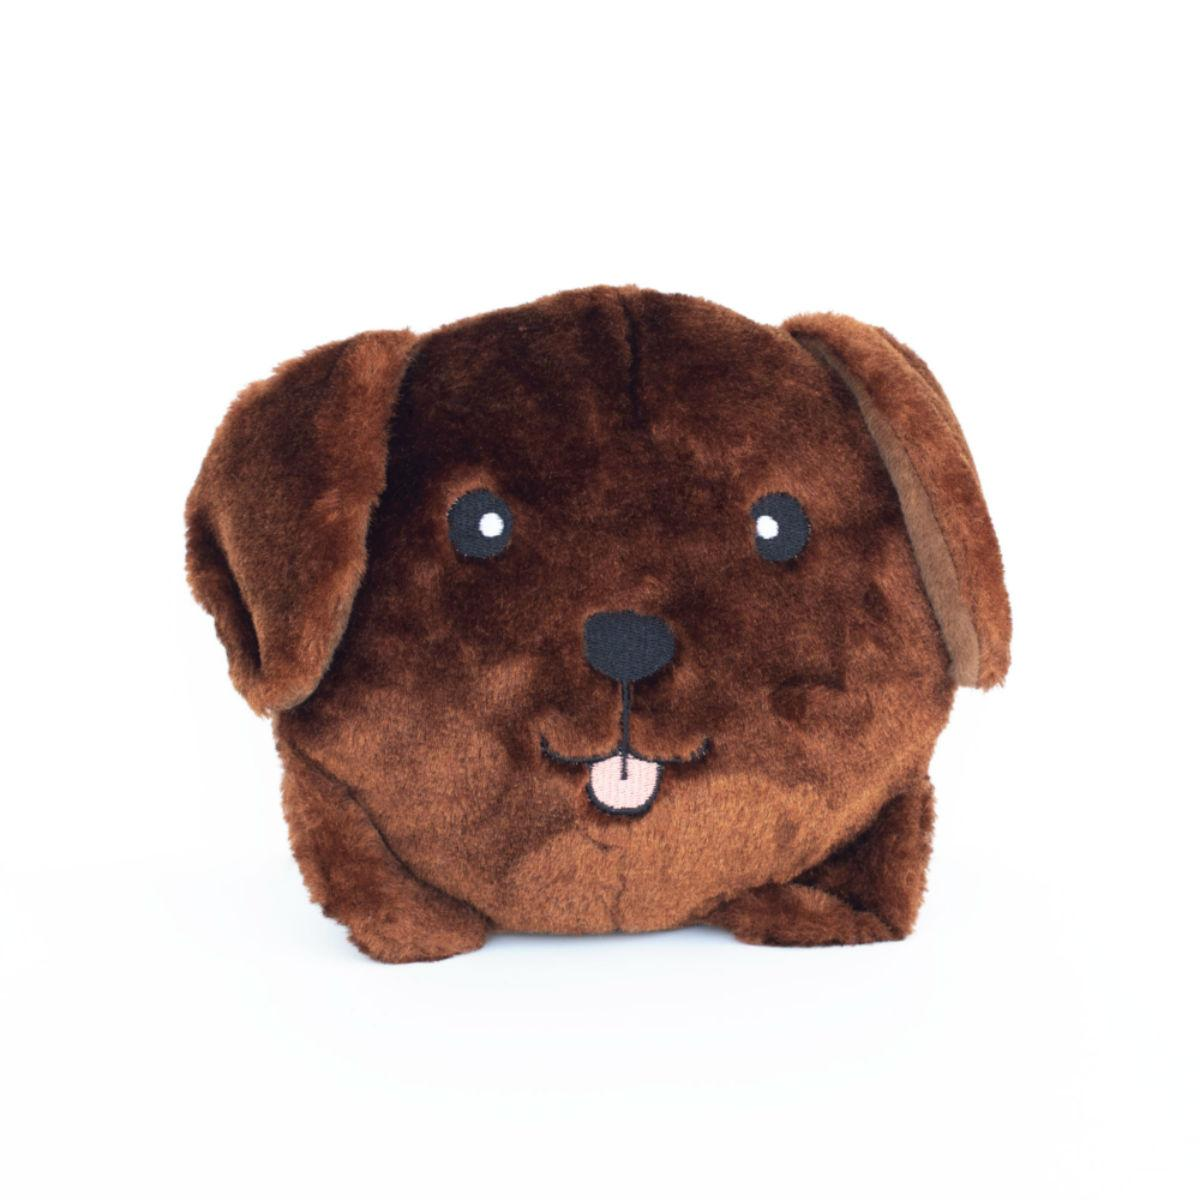 ZippyPaws Squeaky Buns Dog Toy - Chocolate Lab